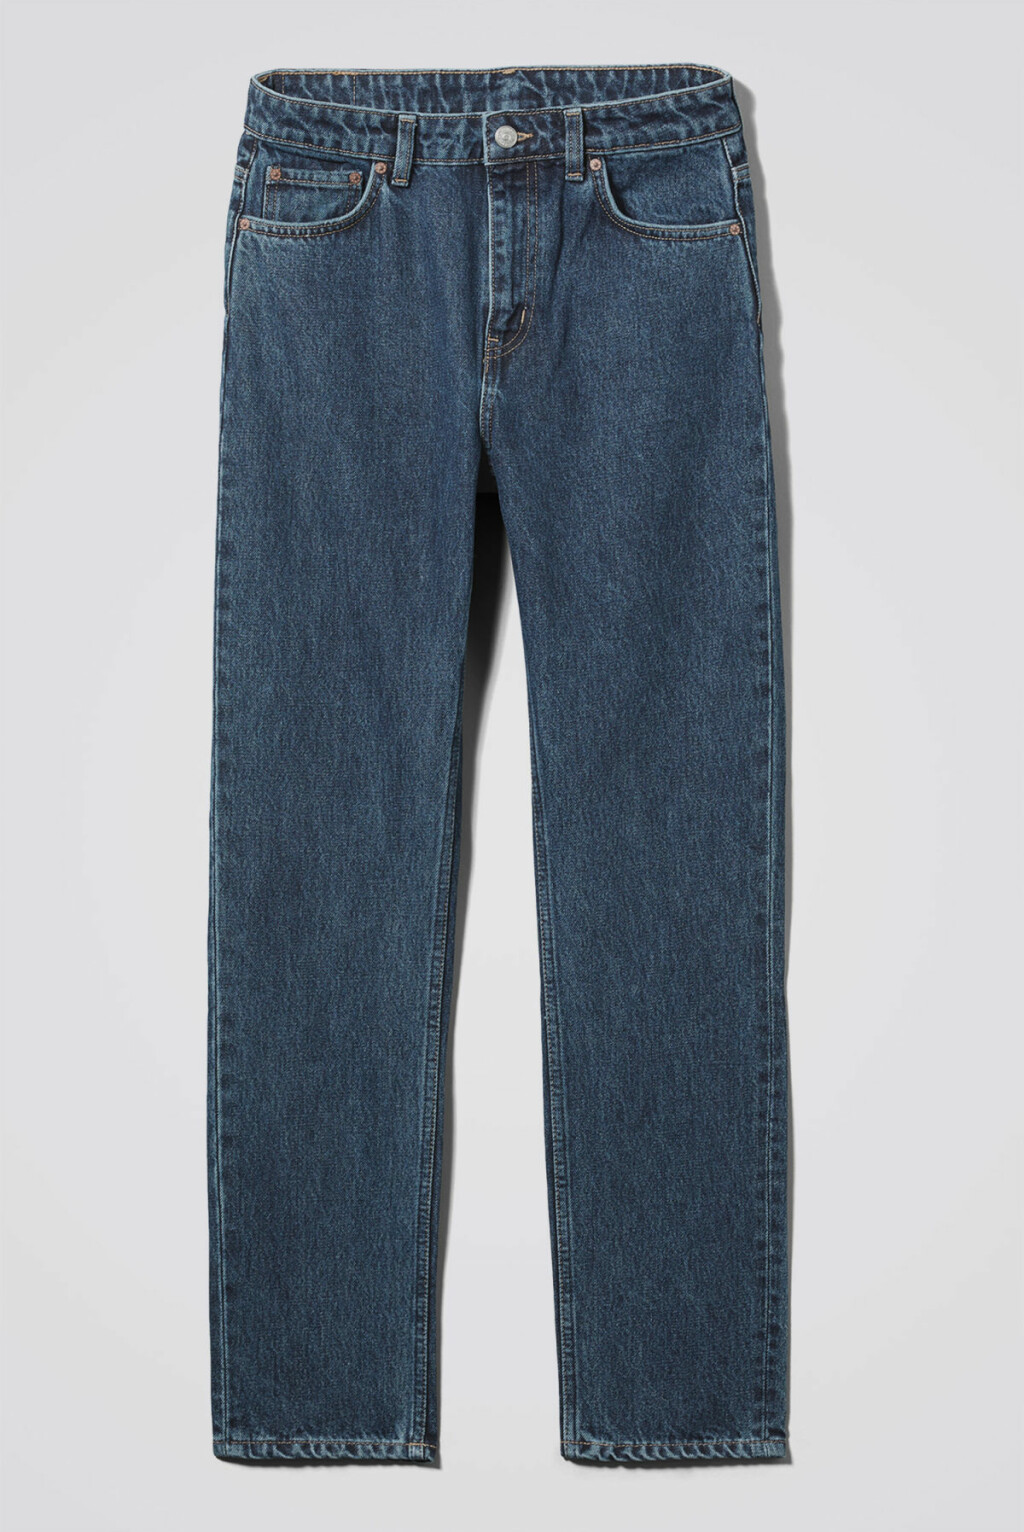 Jeans fra Weekday |500,-